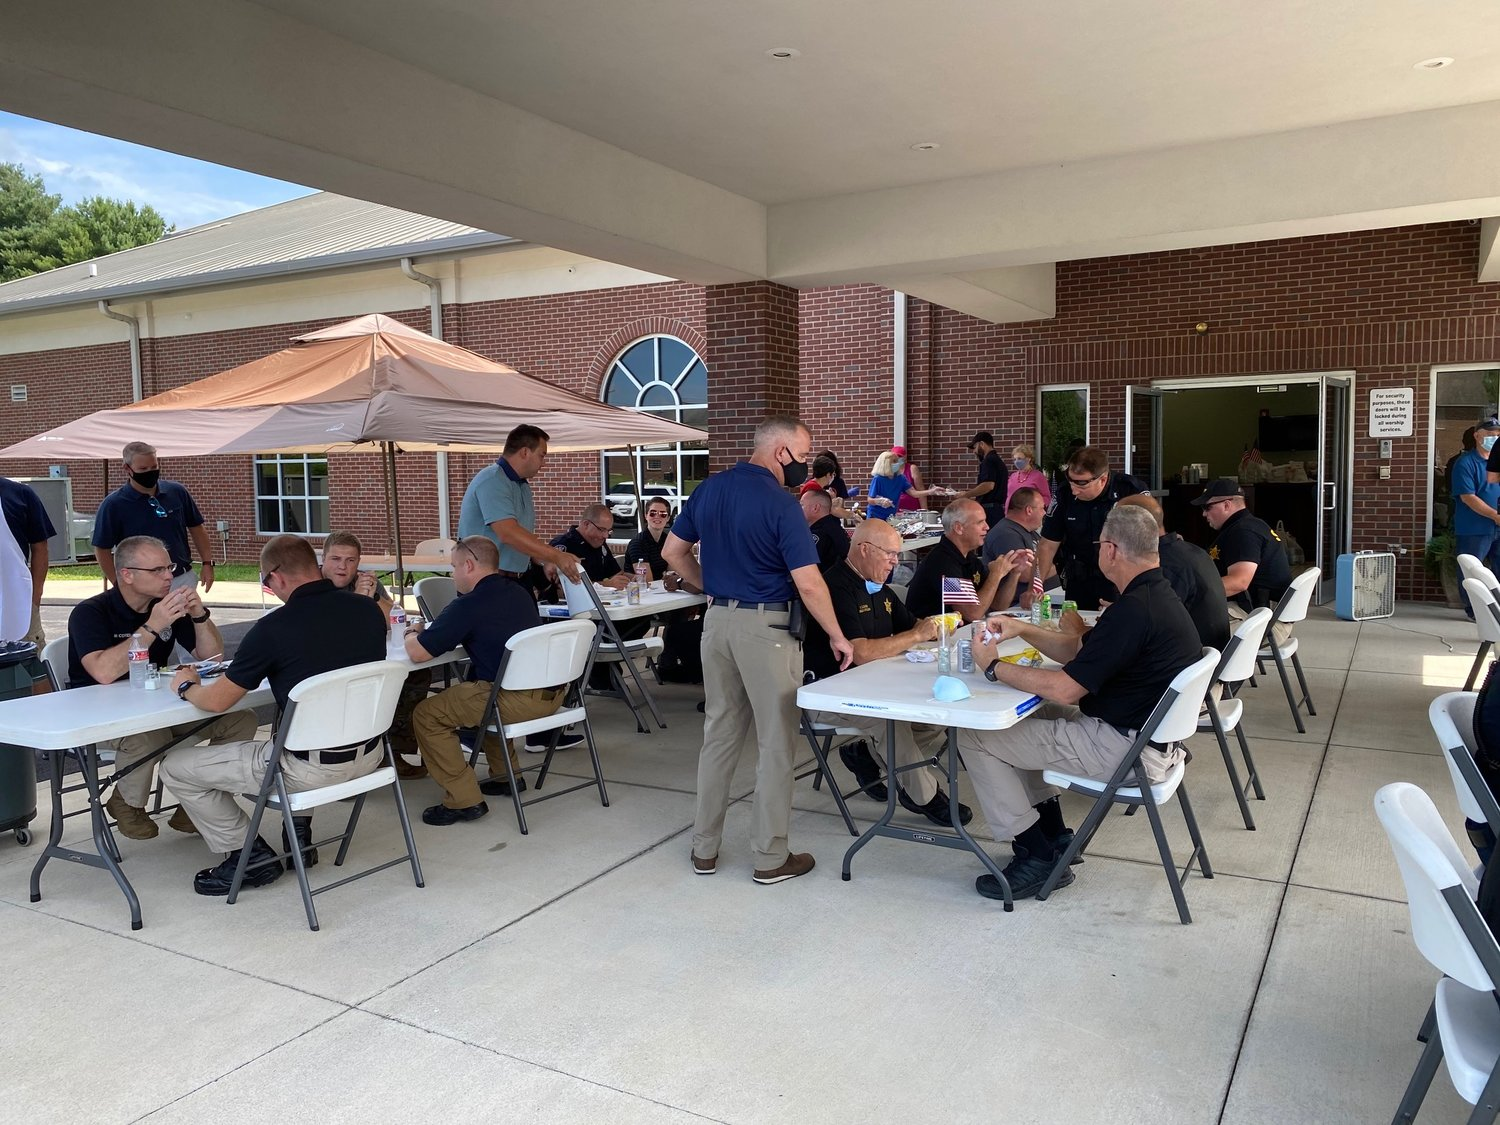 First responders from Somerset were treated to hamburgers and hot dogs by Immanuel Baptist Church recently.